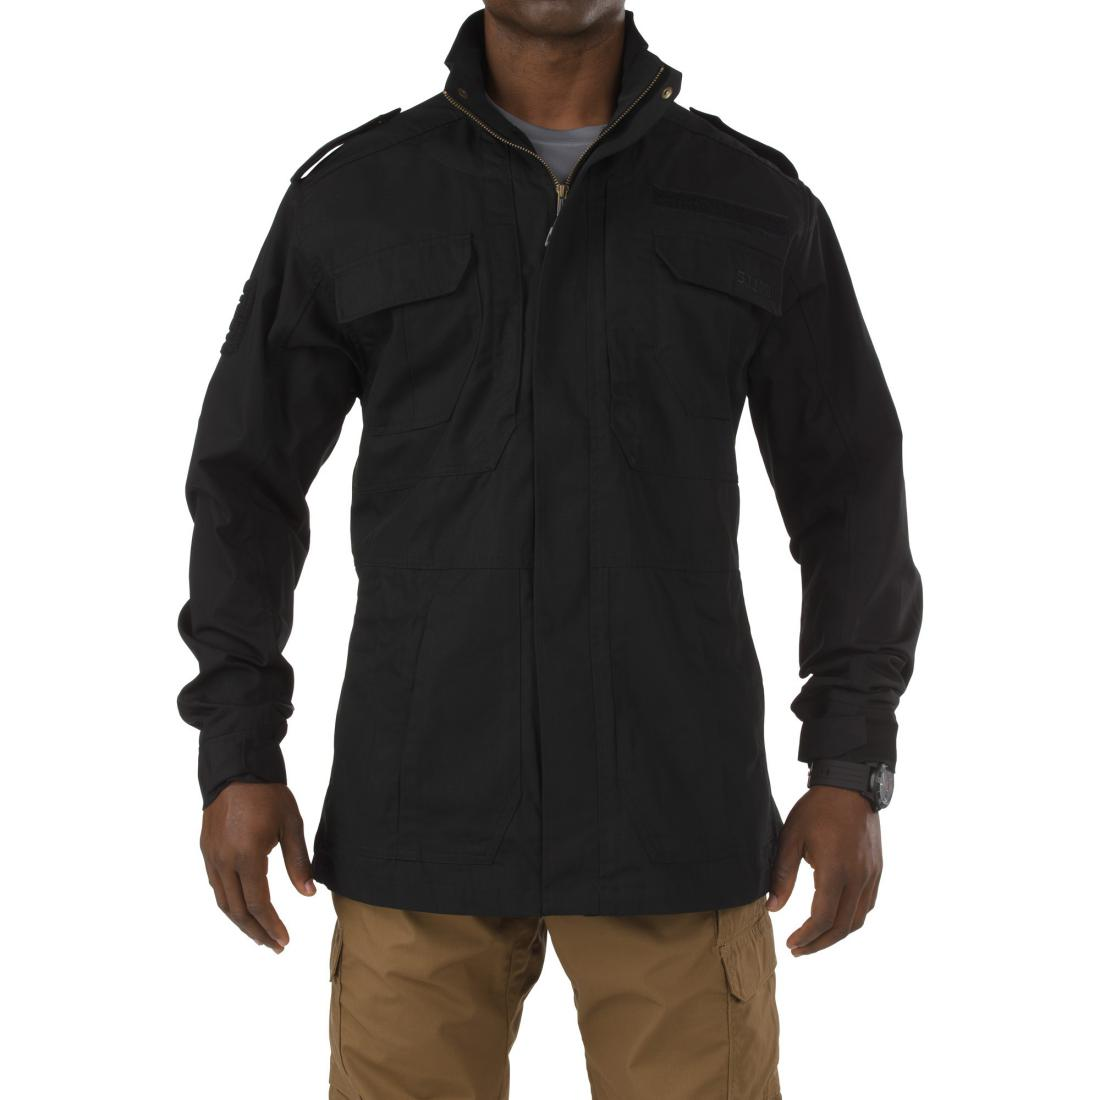 5.11 Tactical 78007 Men Taclite M-65 Jacket Black